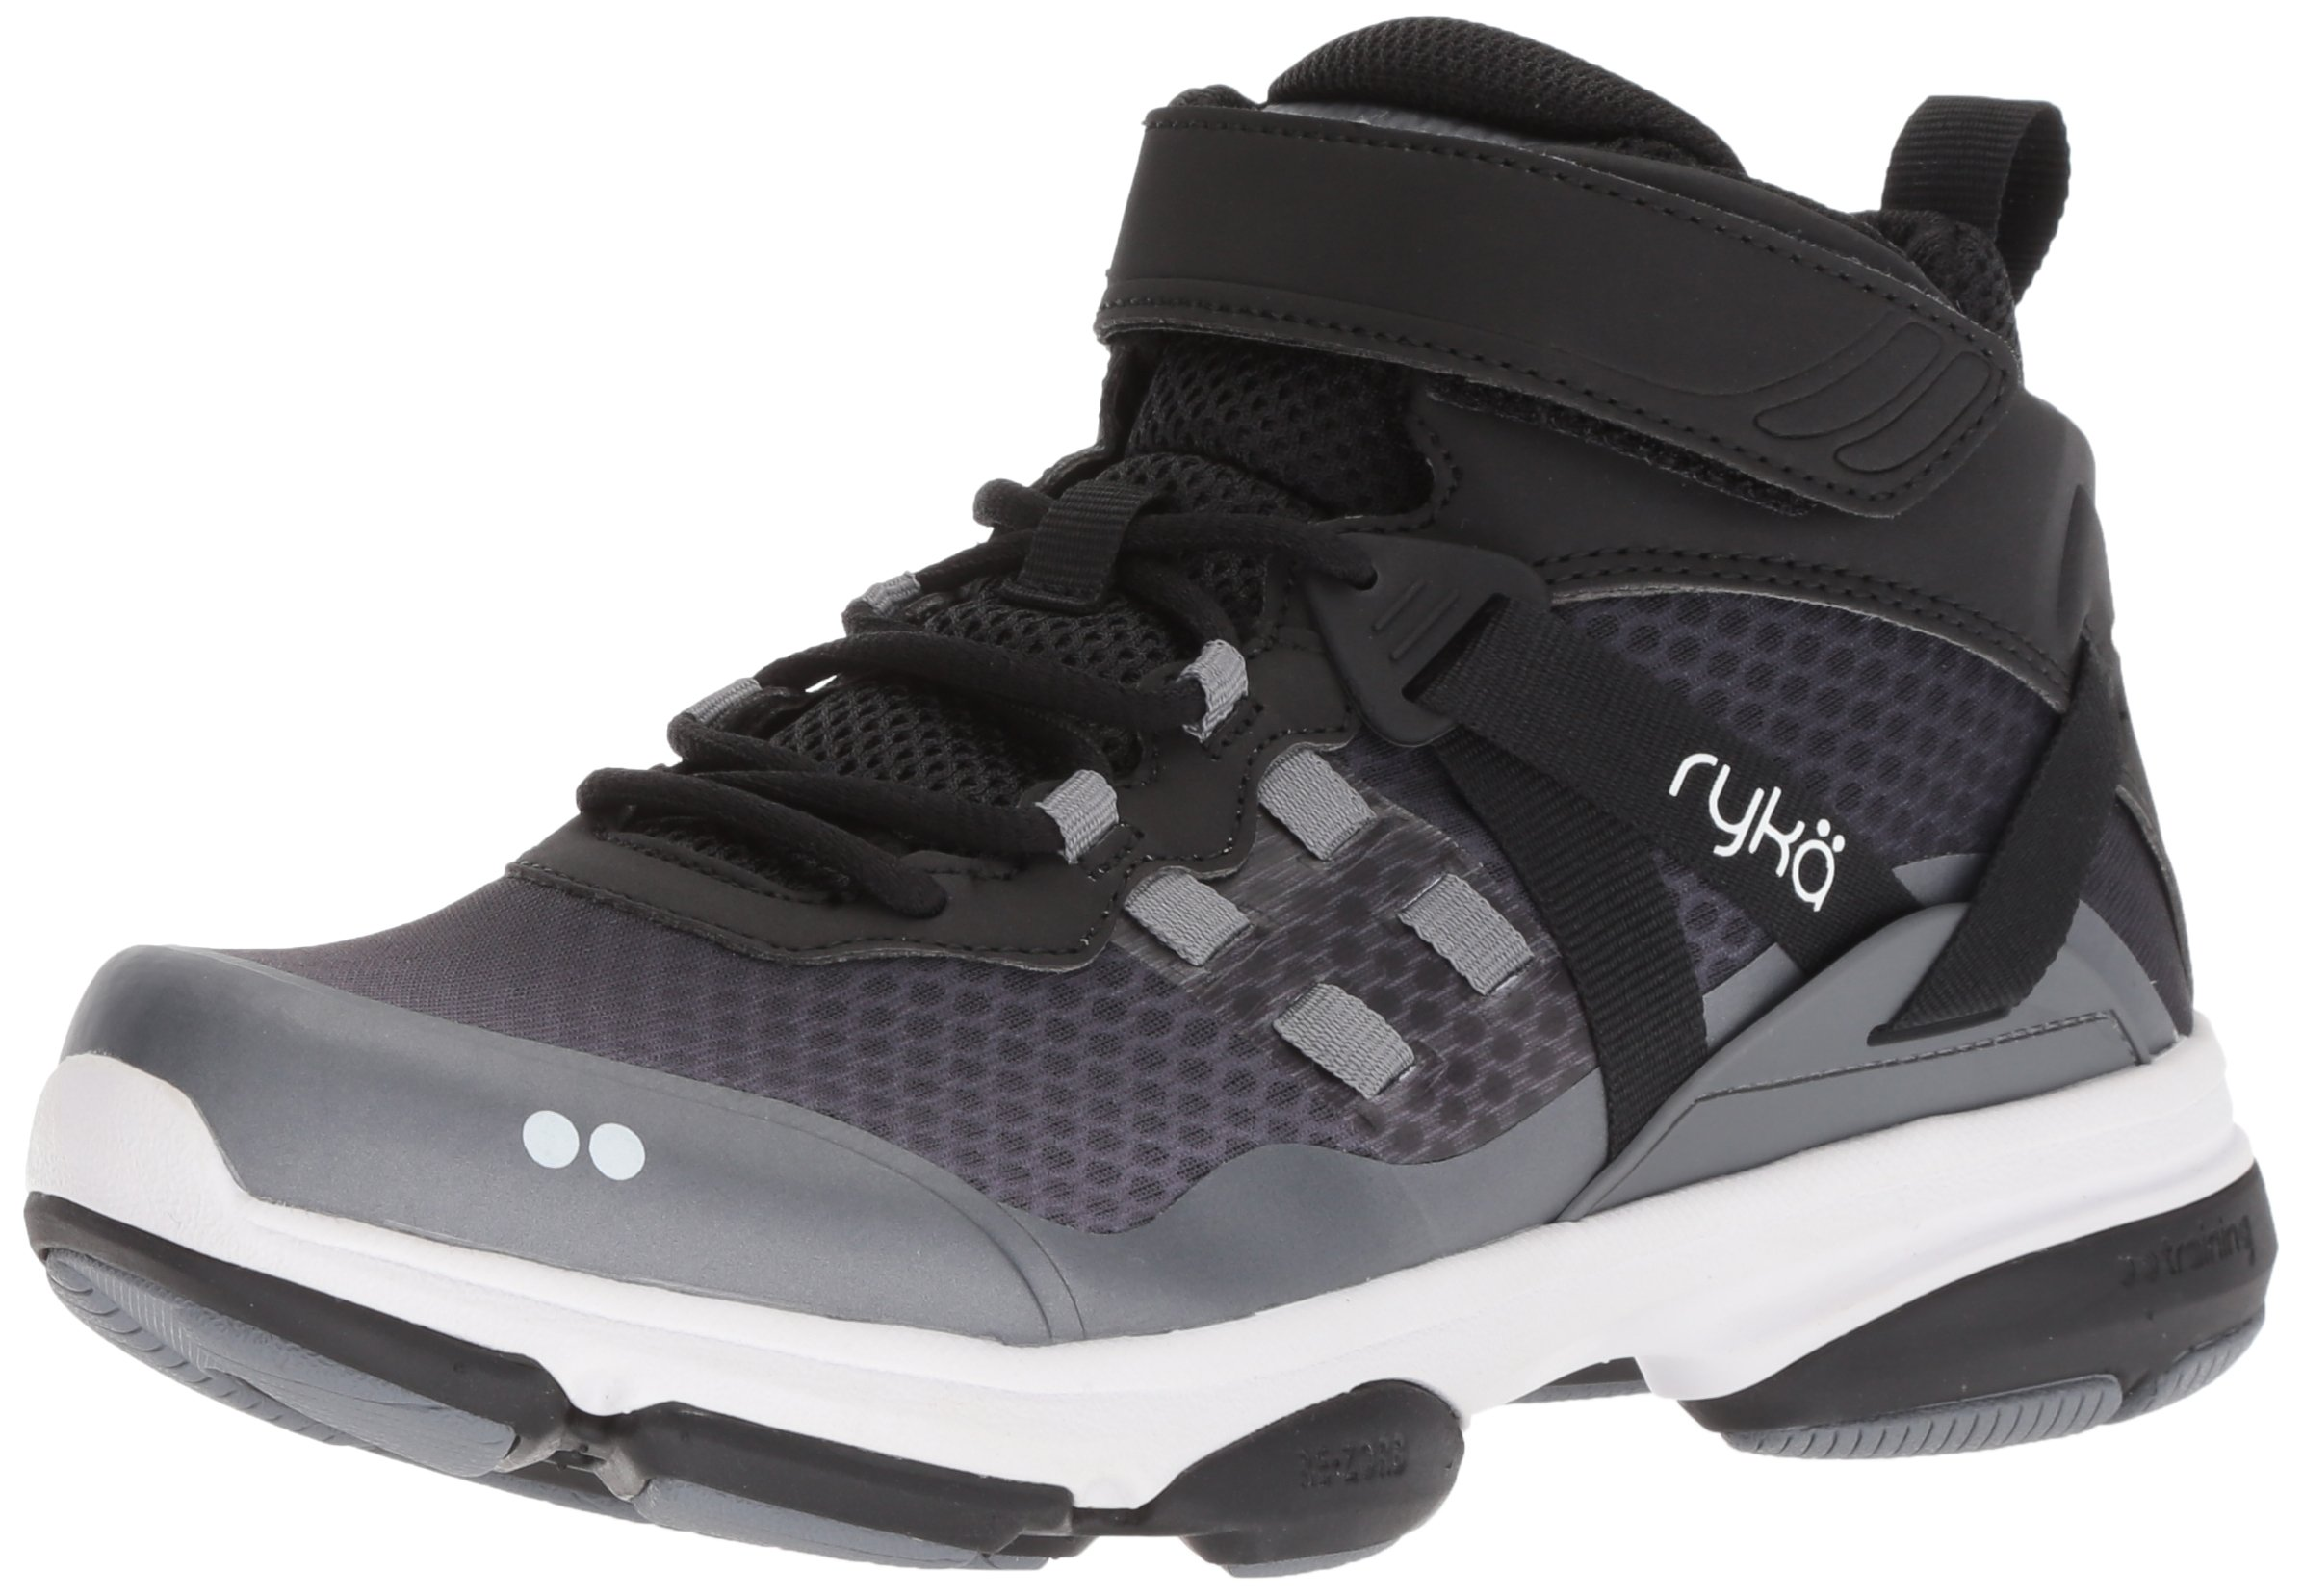 Ryka Women's Devotion XT Mid Cross Trainer, Black/Grey/White, 9 M US by Ryka (Image #1)